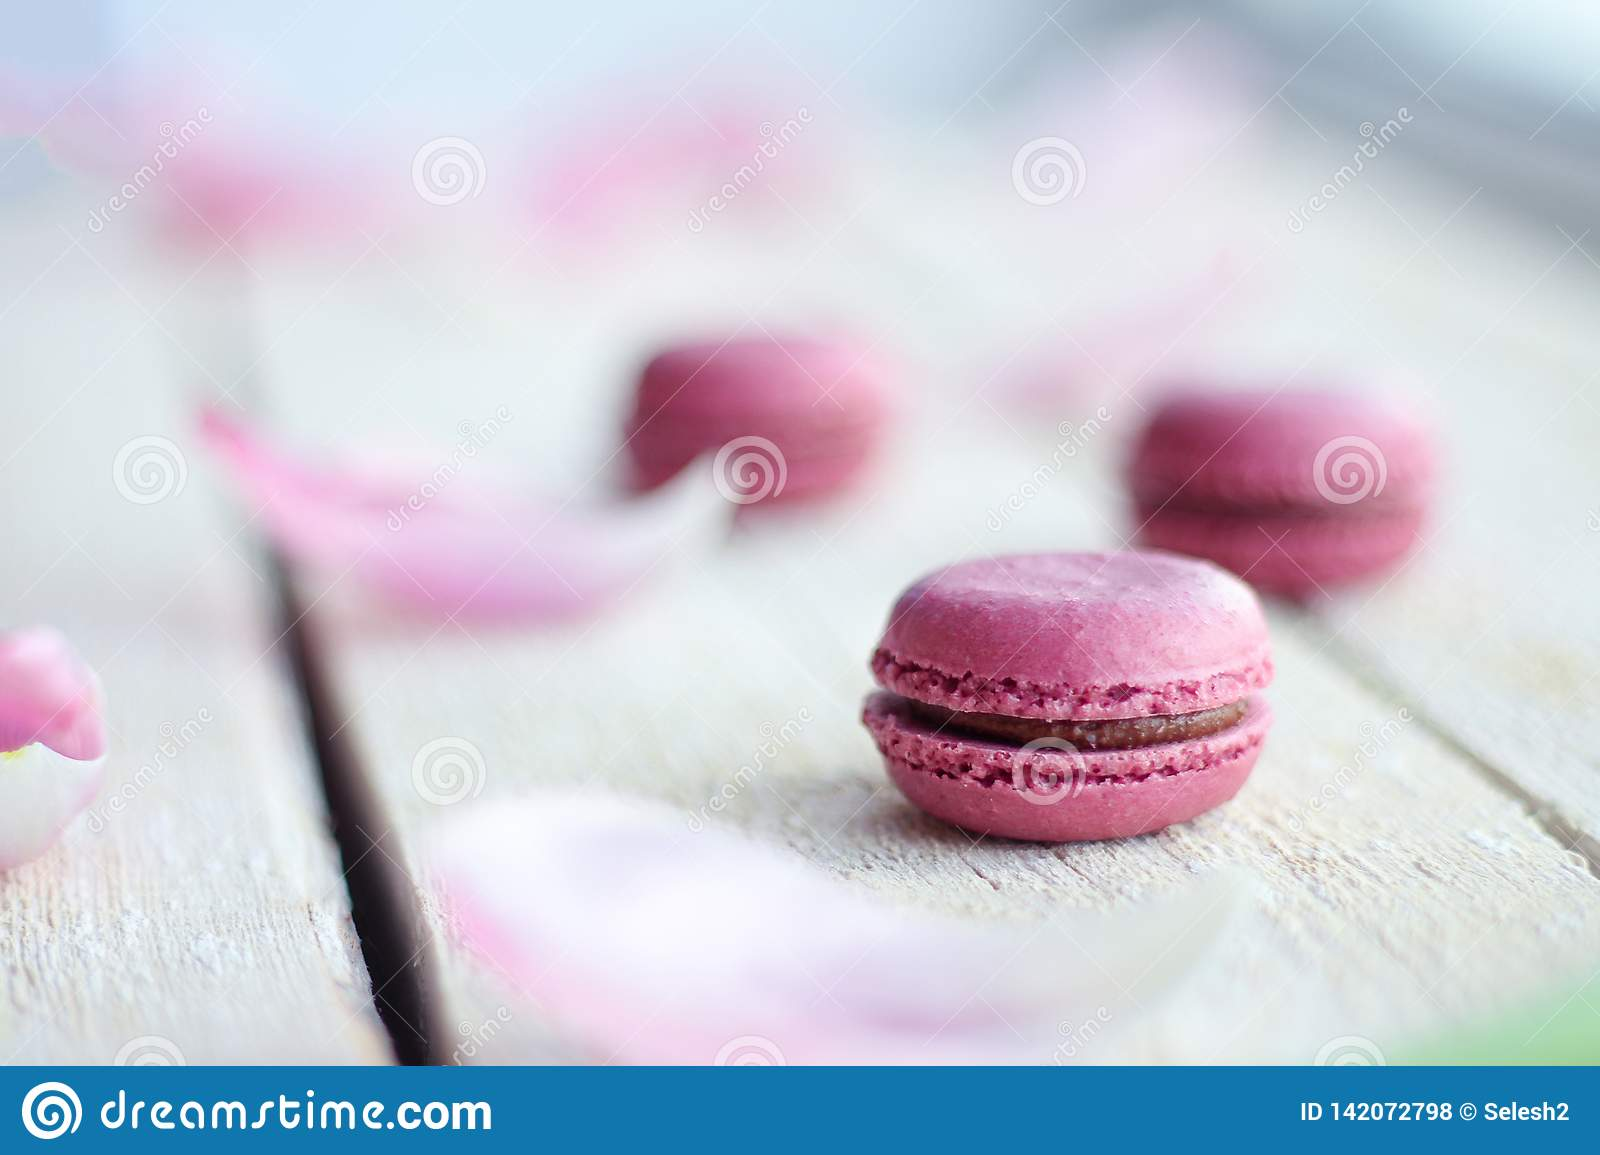 Romantic delicate composition with pink flowers and macaroon cakes.